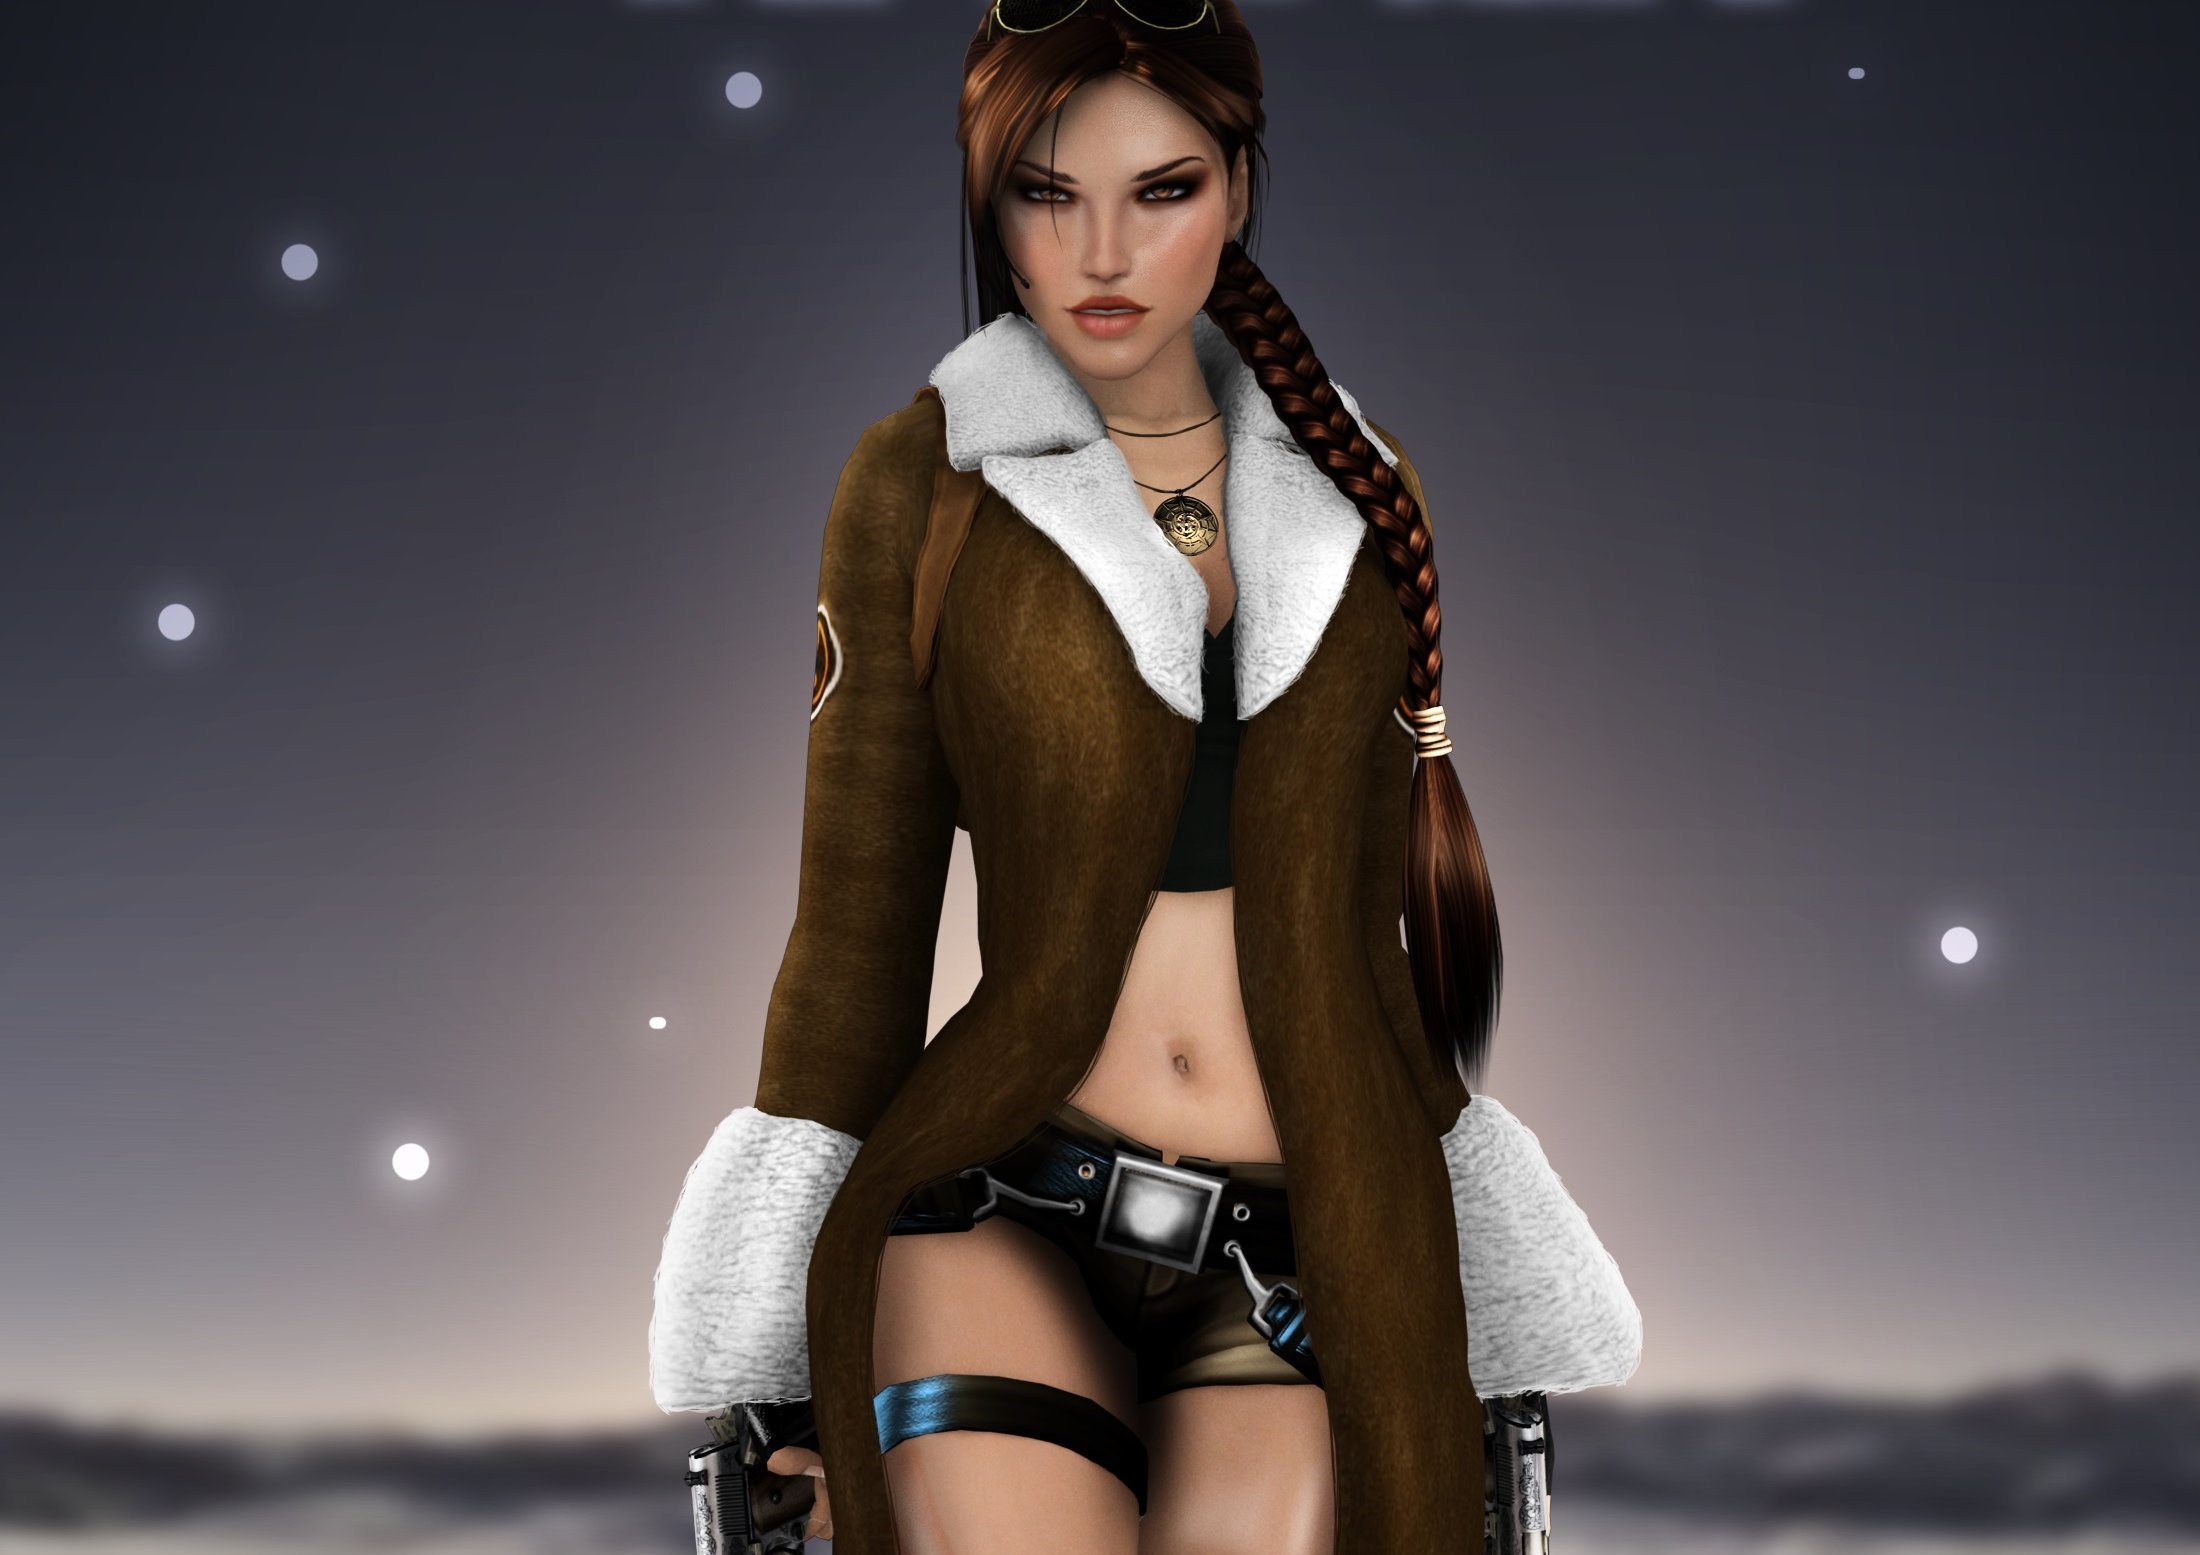 Lara croft vs monsters 3gp sexual picture